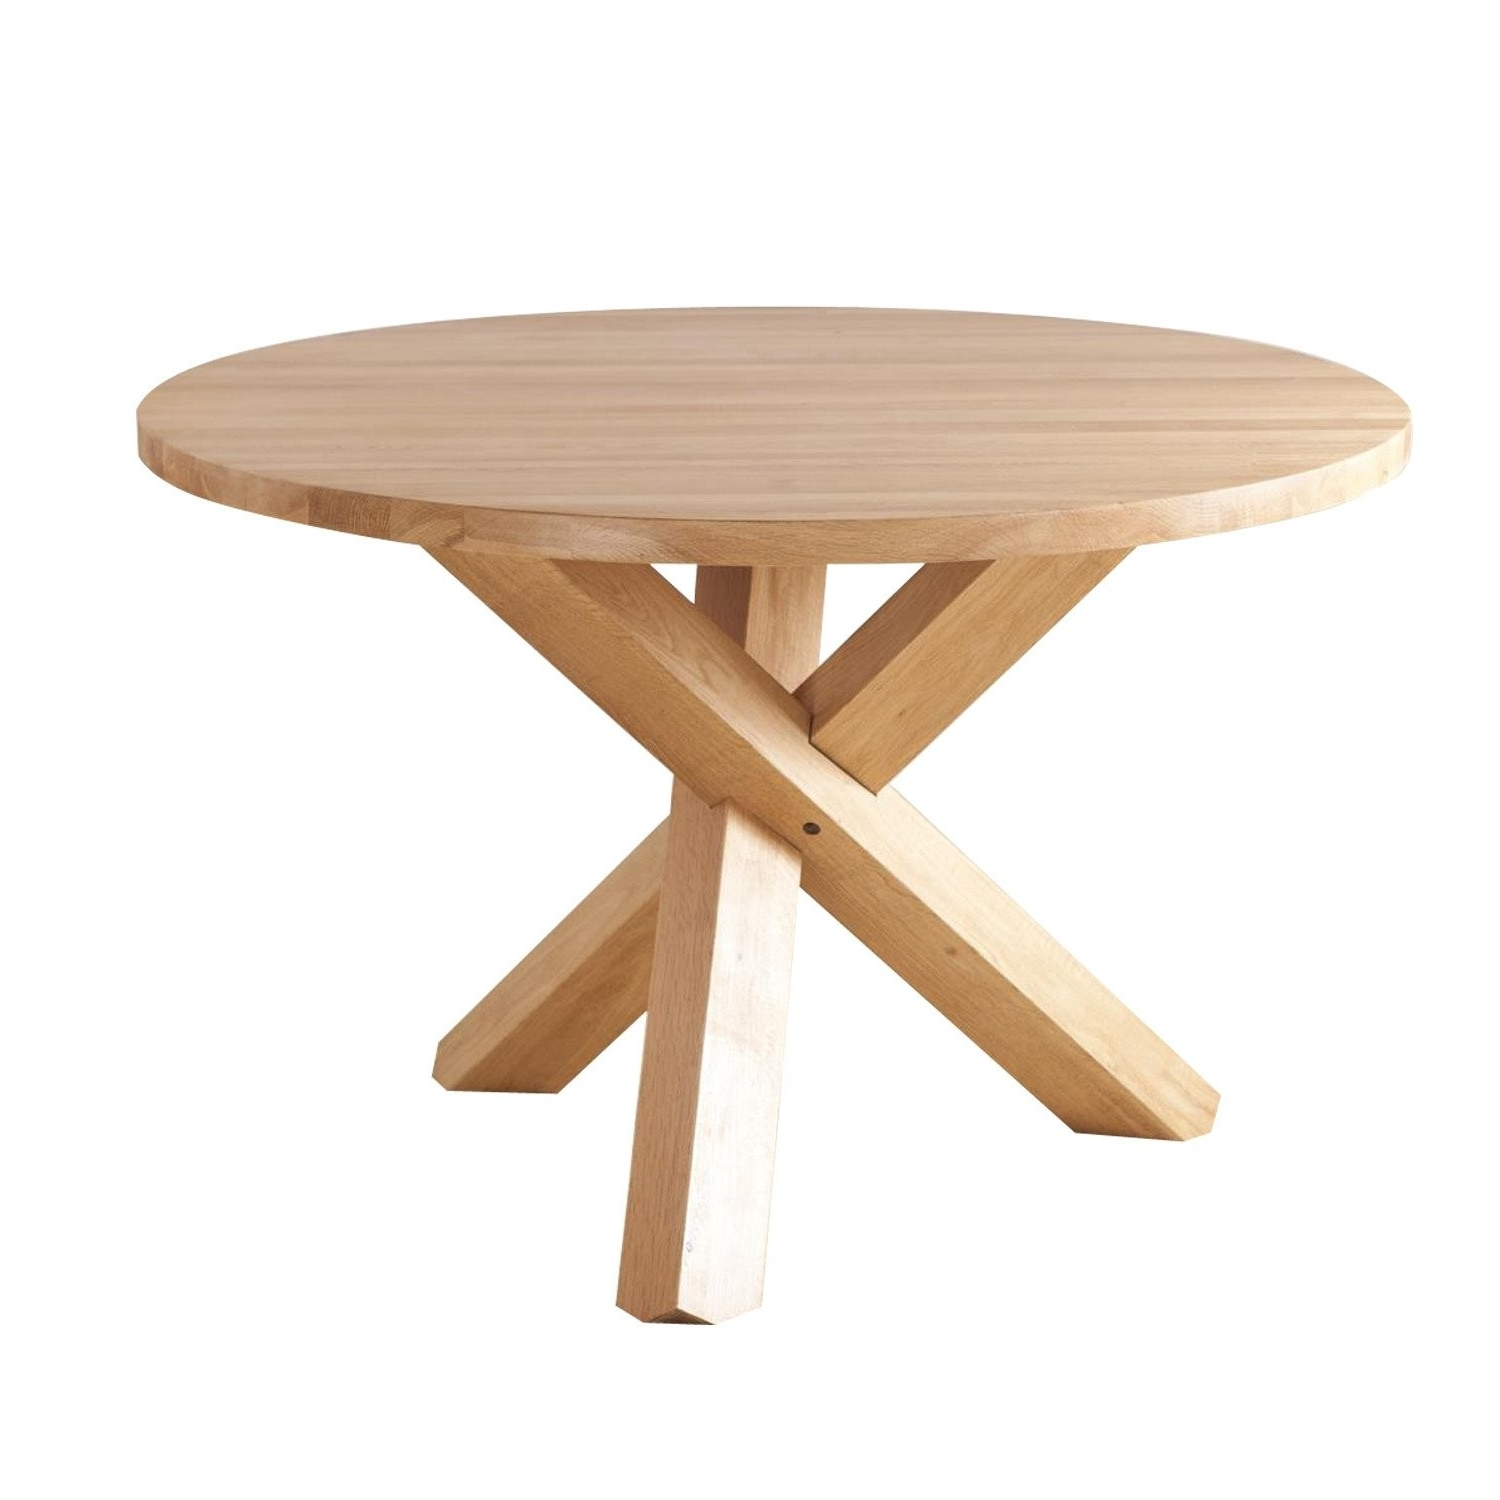 Best And Newest Round Oak Dining Tables – Soulpower Regarding Circular Oak Dining Tables (Gallery 8 of 25)